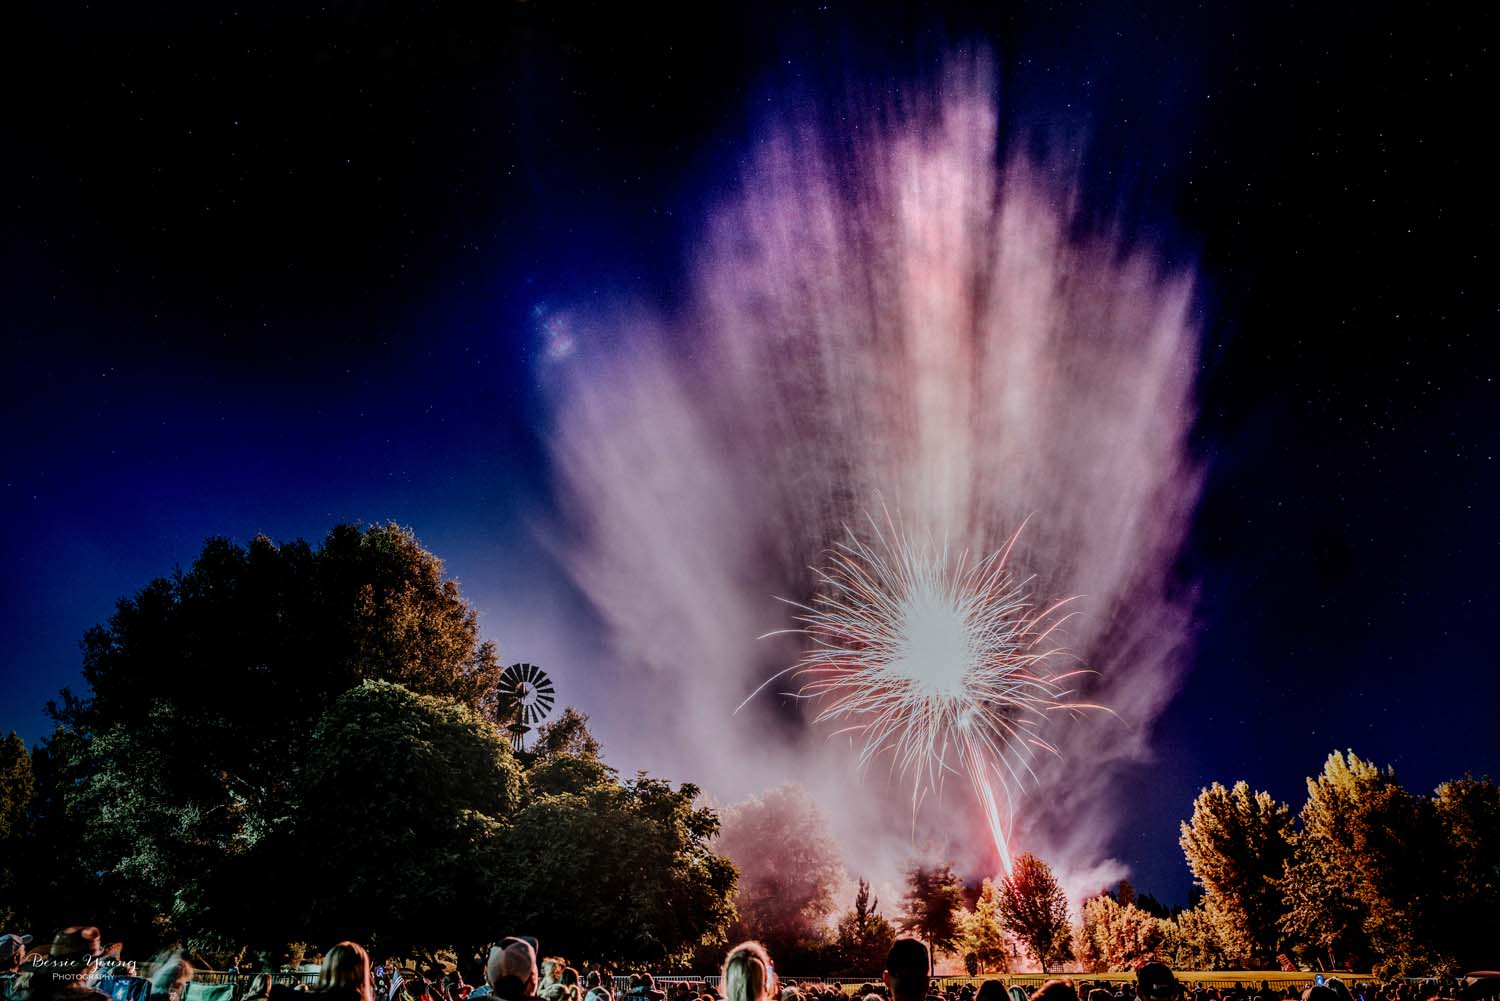 Ironstone Vineyards 4th of July Celebration  - Bessie Young Photography-17.jpg